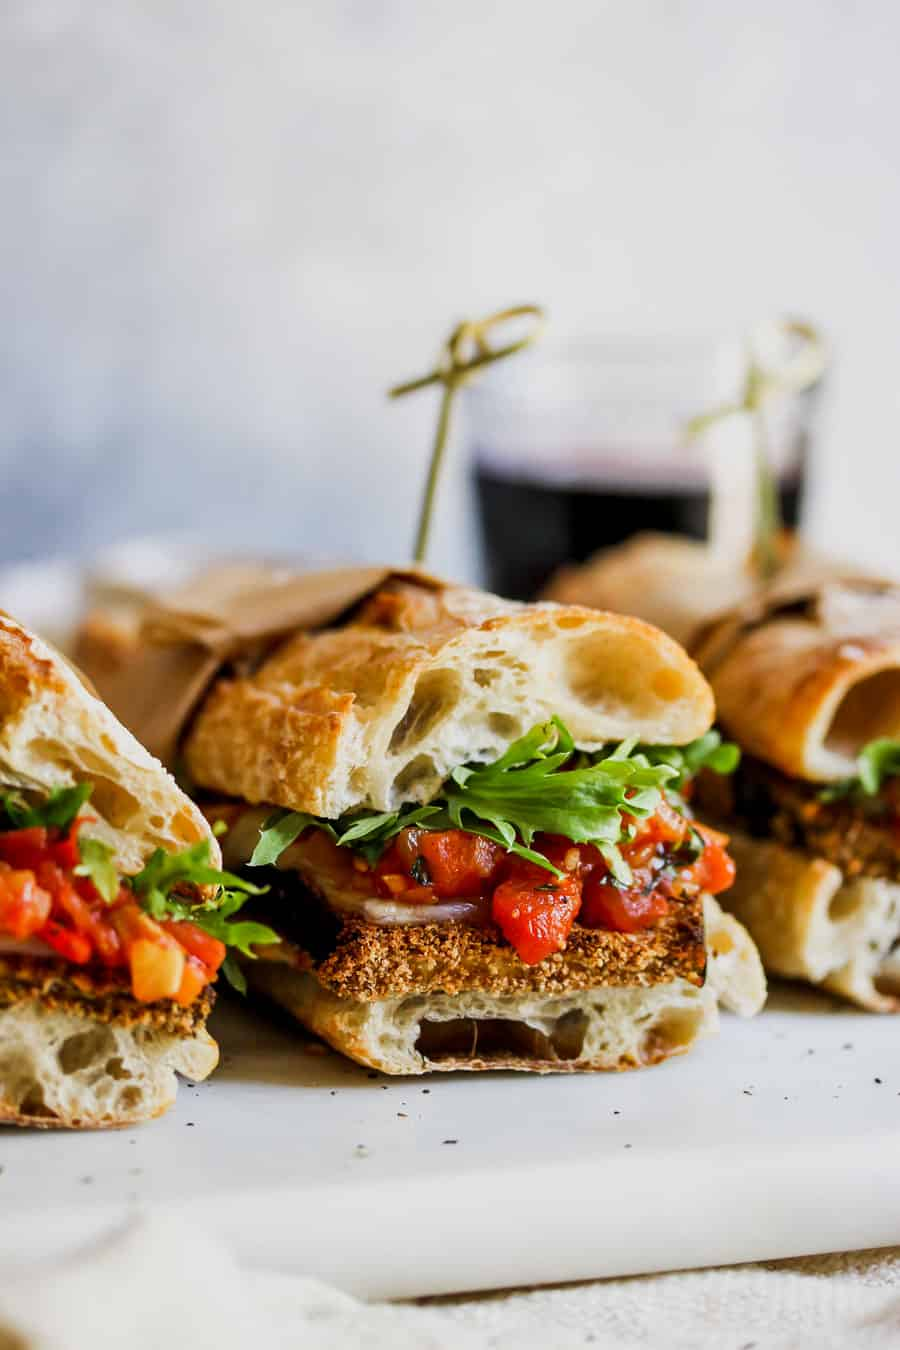 Crispy eggplant sandwiches against white background.